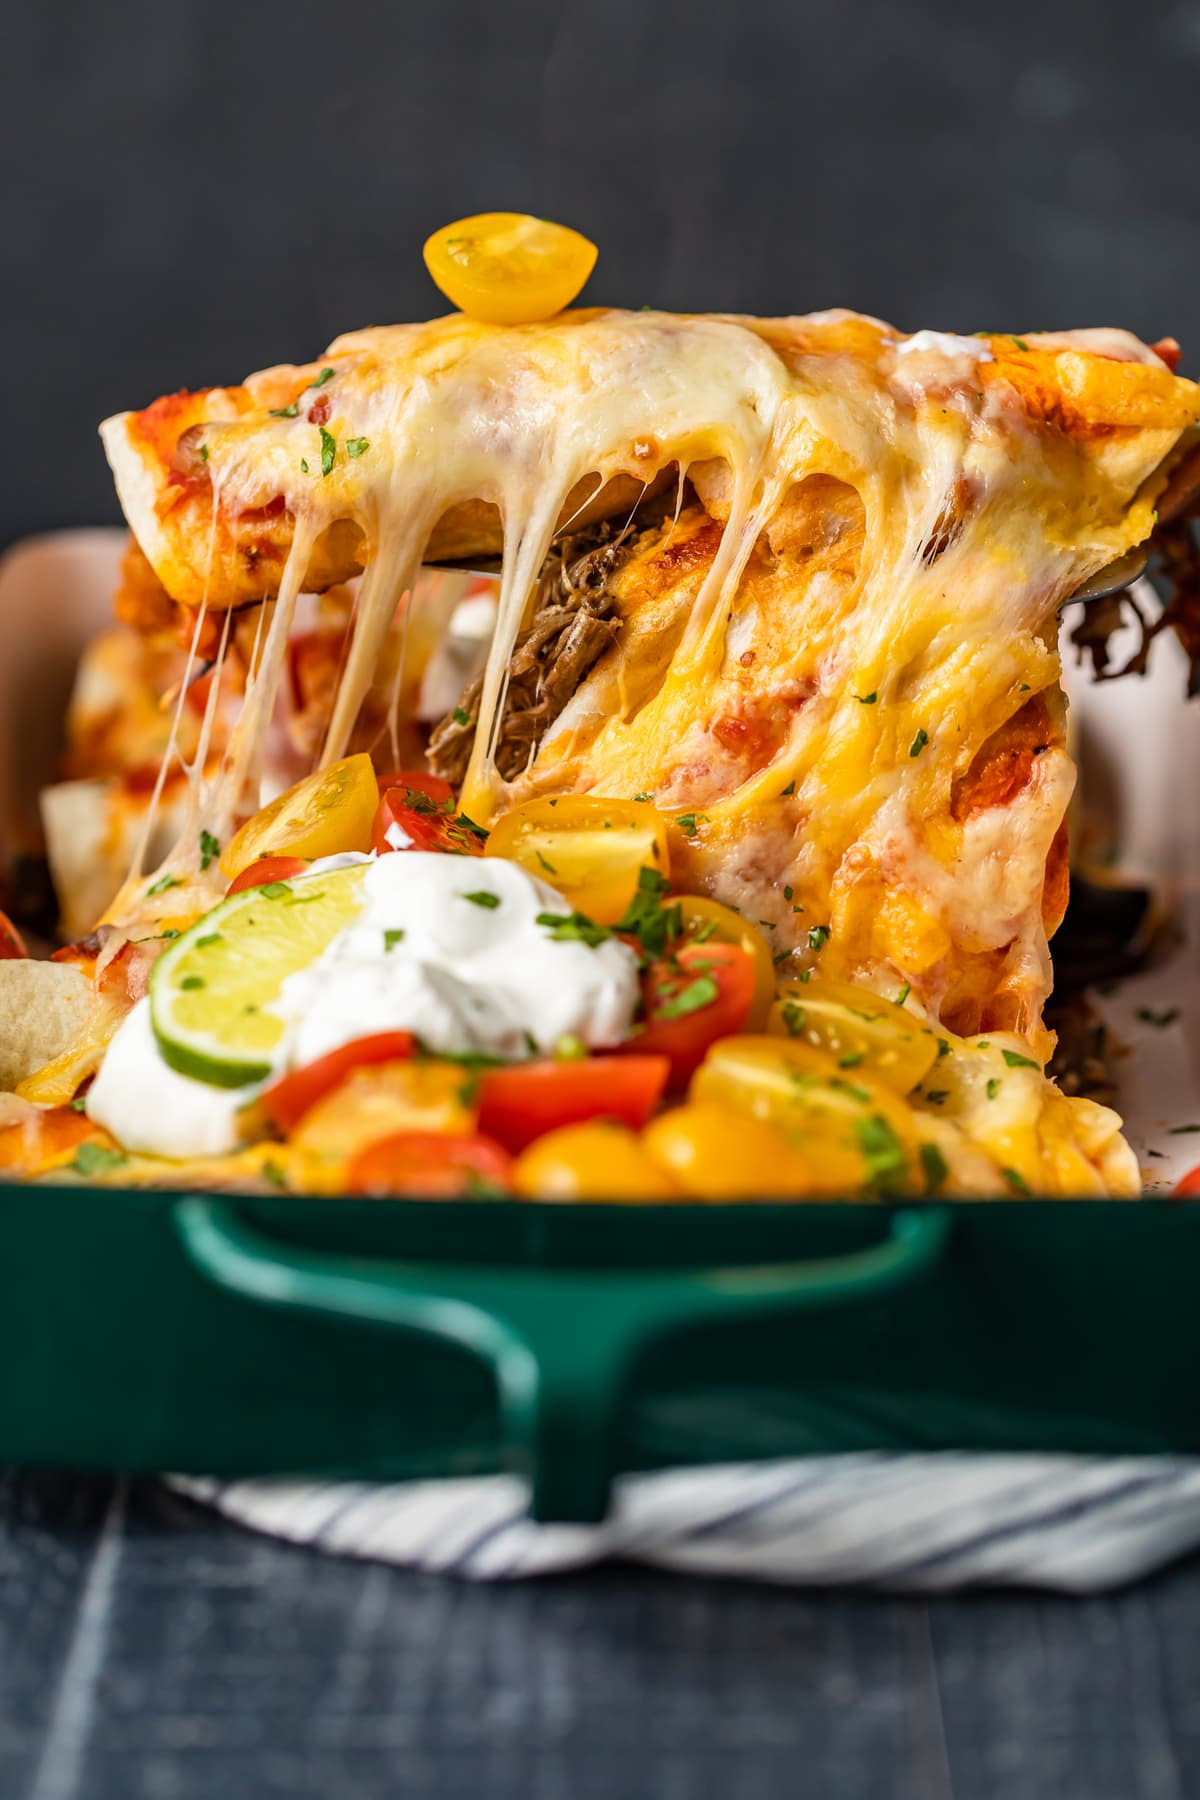 enchiladas filled with shredded beef and cheese